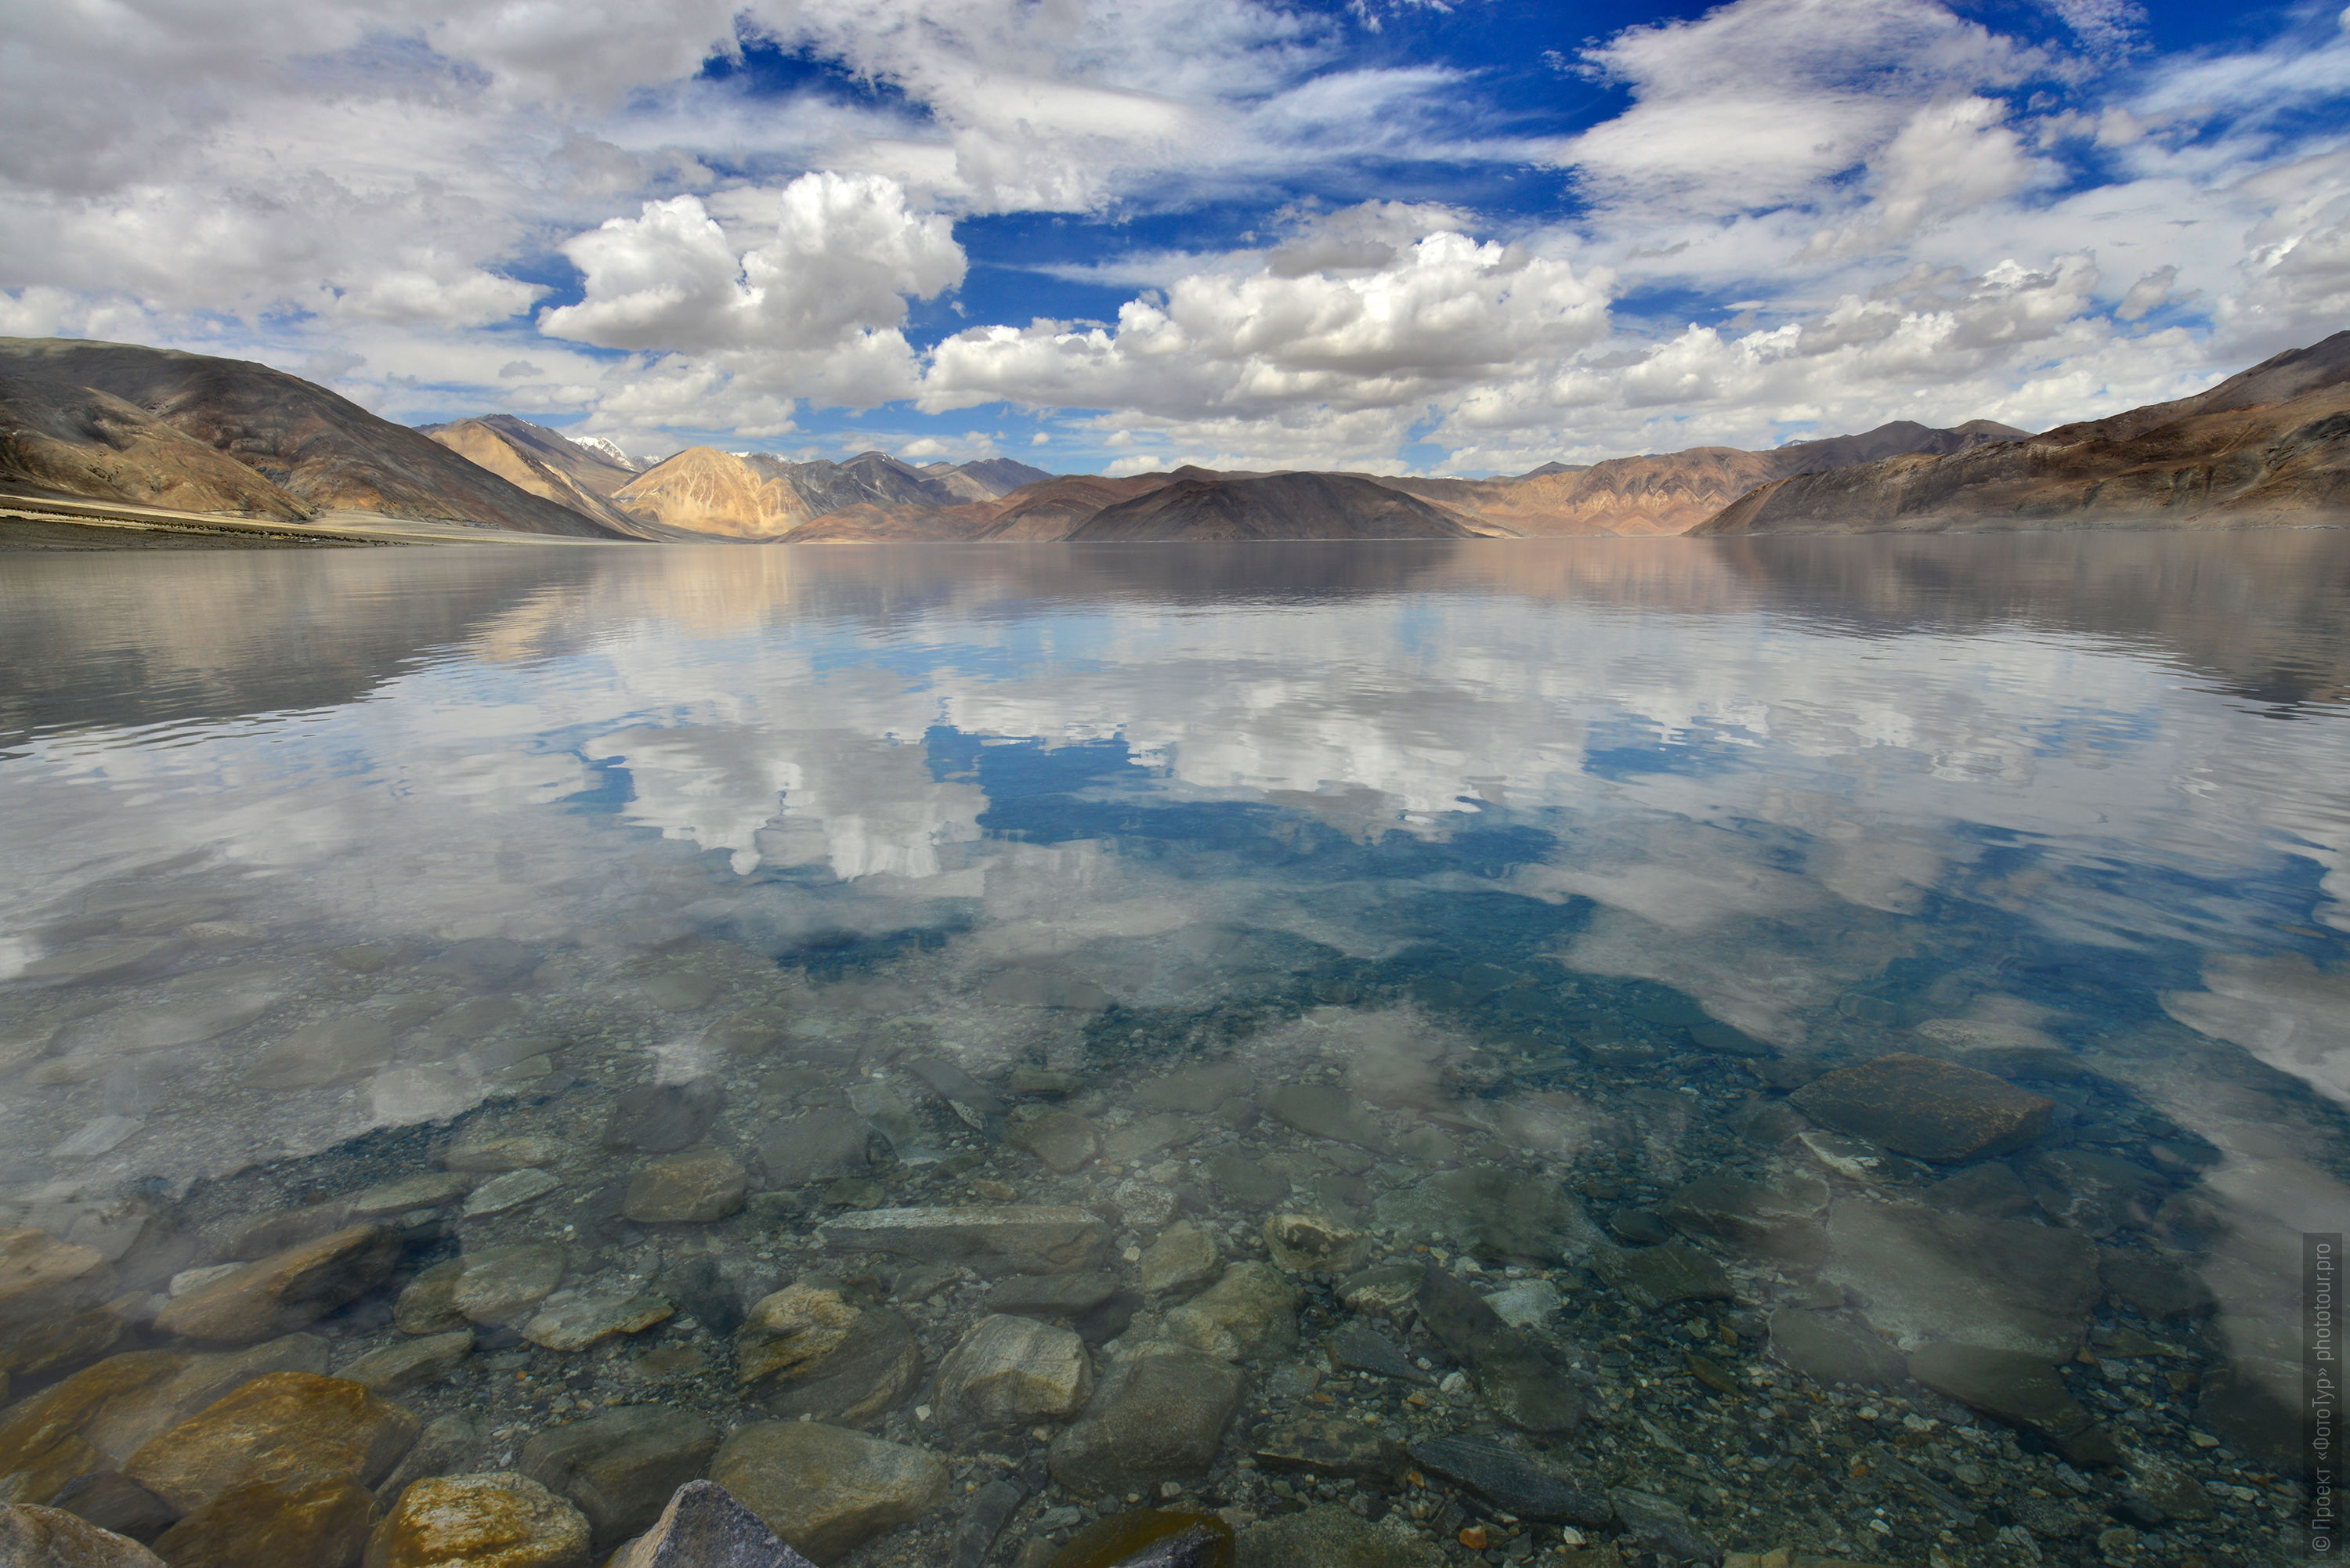 Photo of alpine lake Pangong Tso, Ladakh. Expedition Tibet Lake-2: Pangong, Tso Moriri, Tso Kar, Tso Startsapak, Leh-Manali highway.